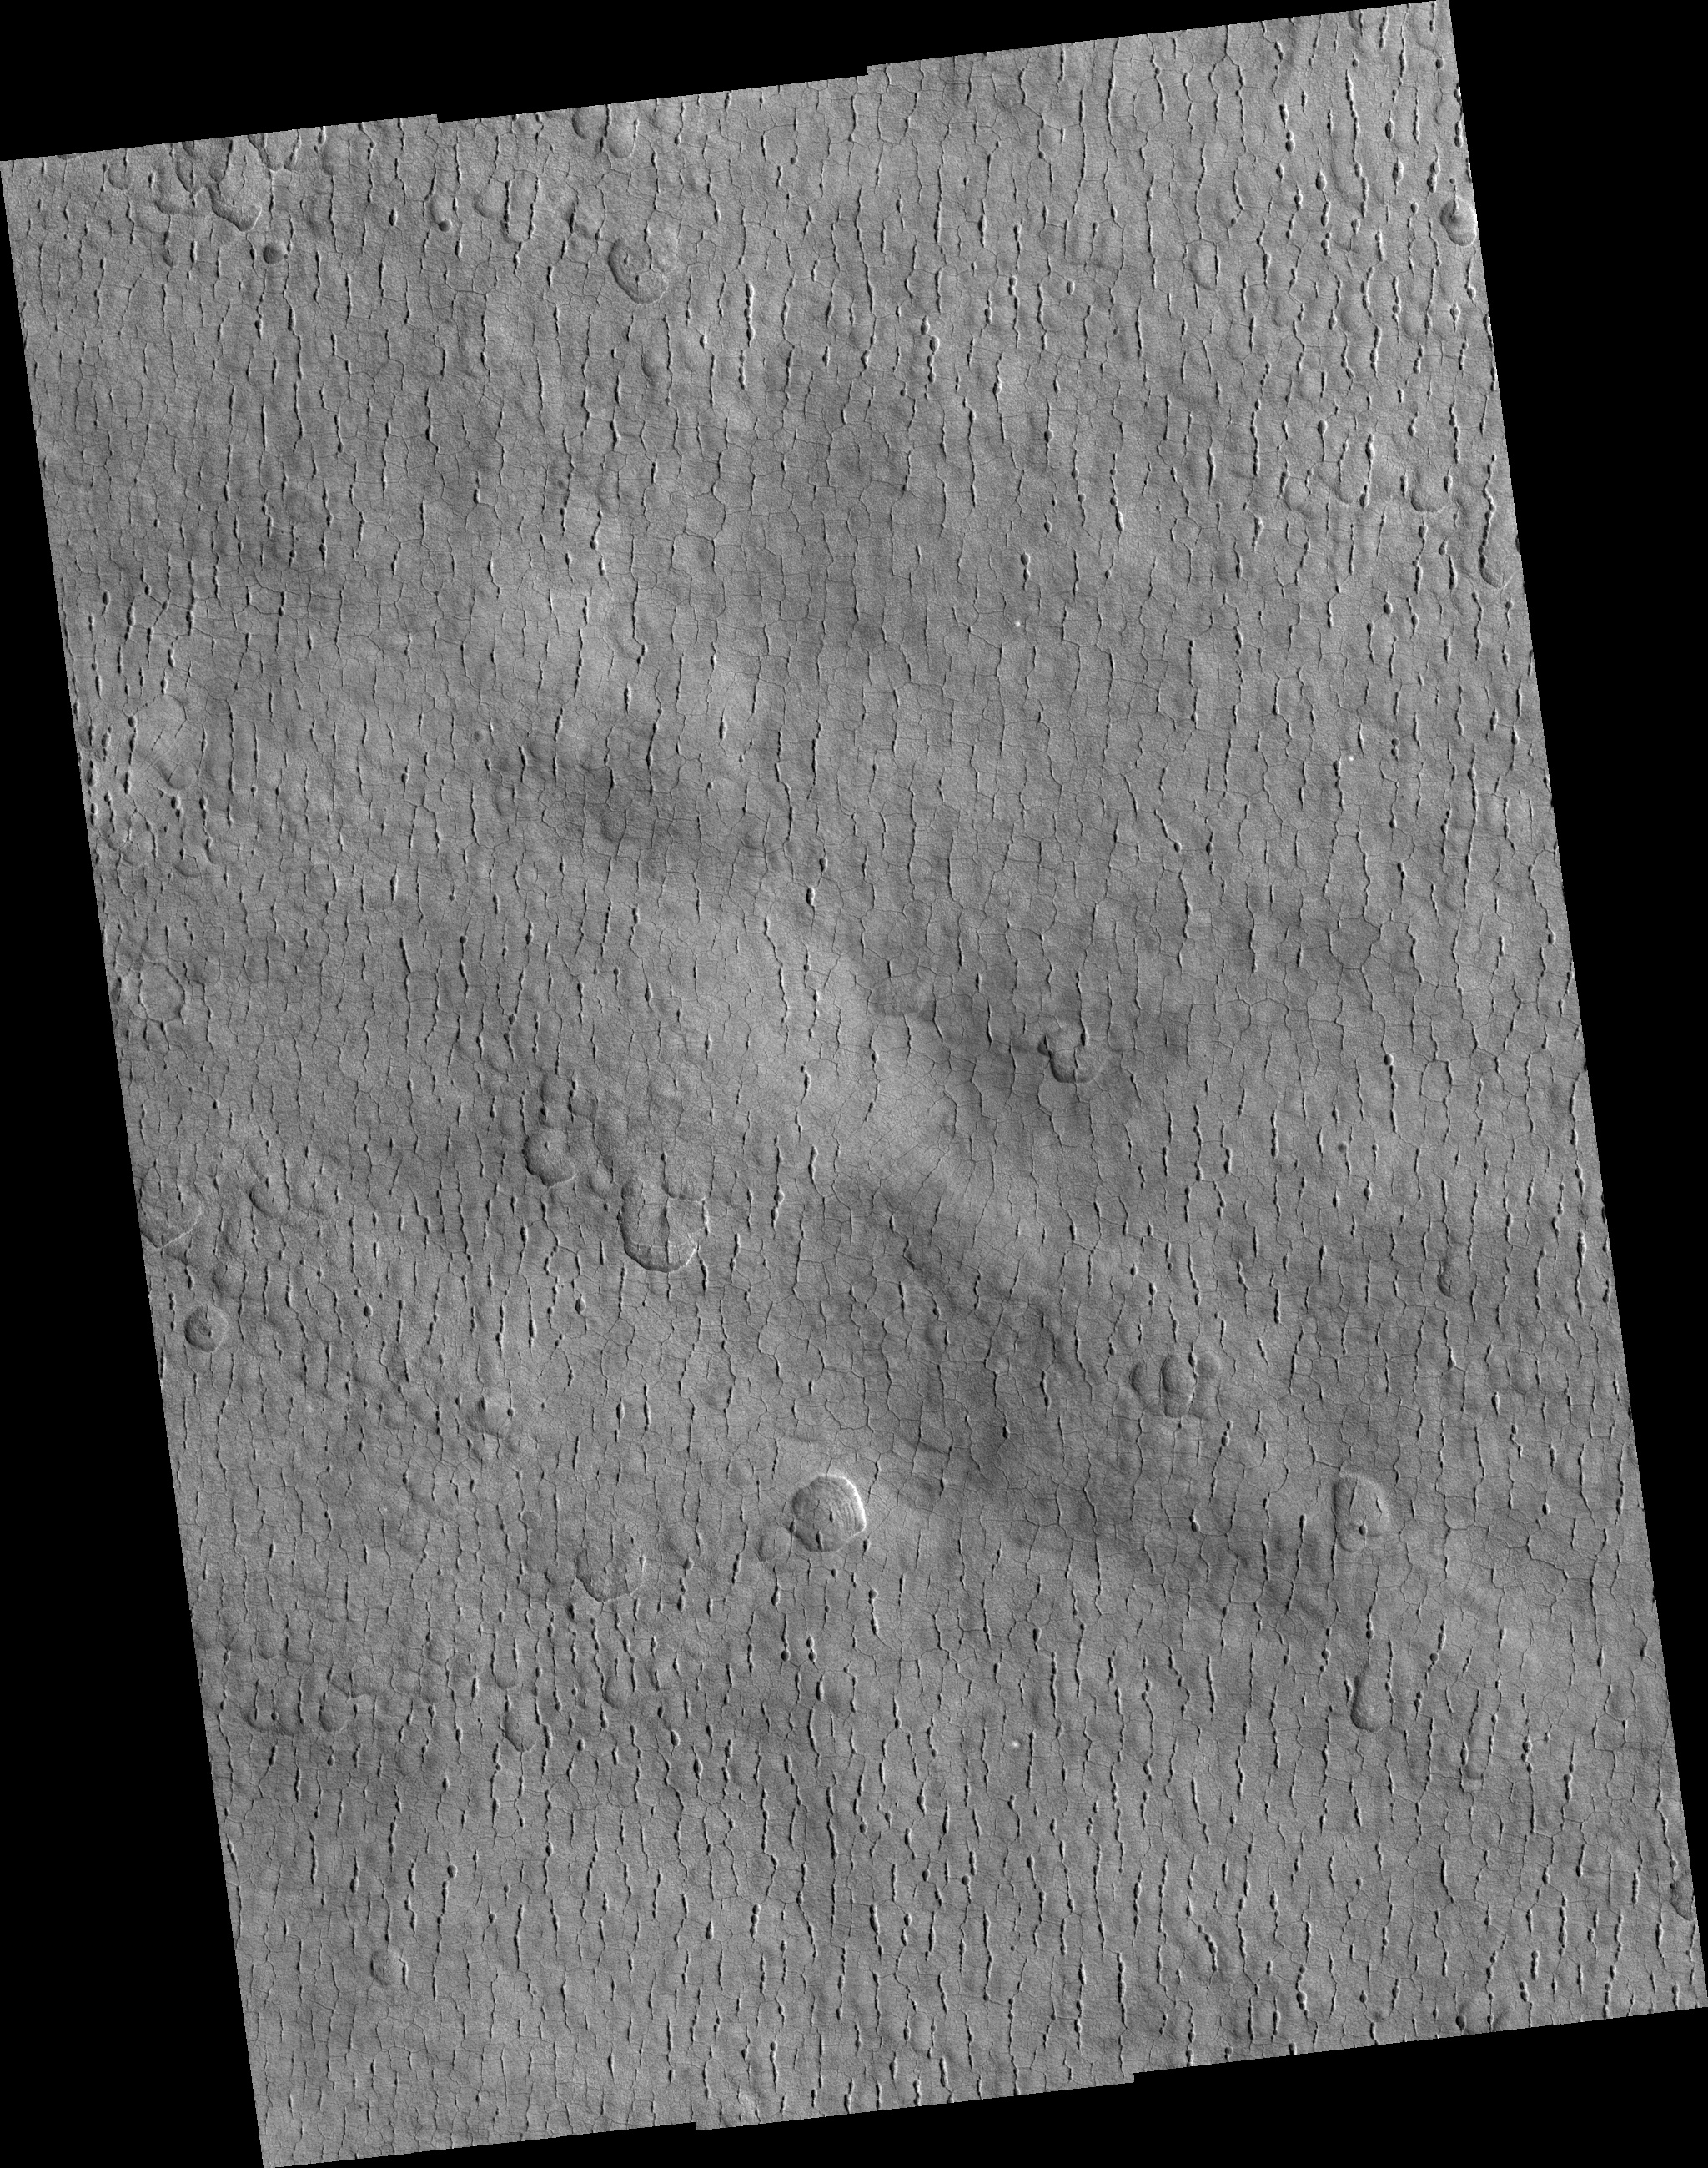 Pits, Cracks, and Polygons in Western Utopia Planitia